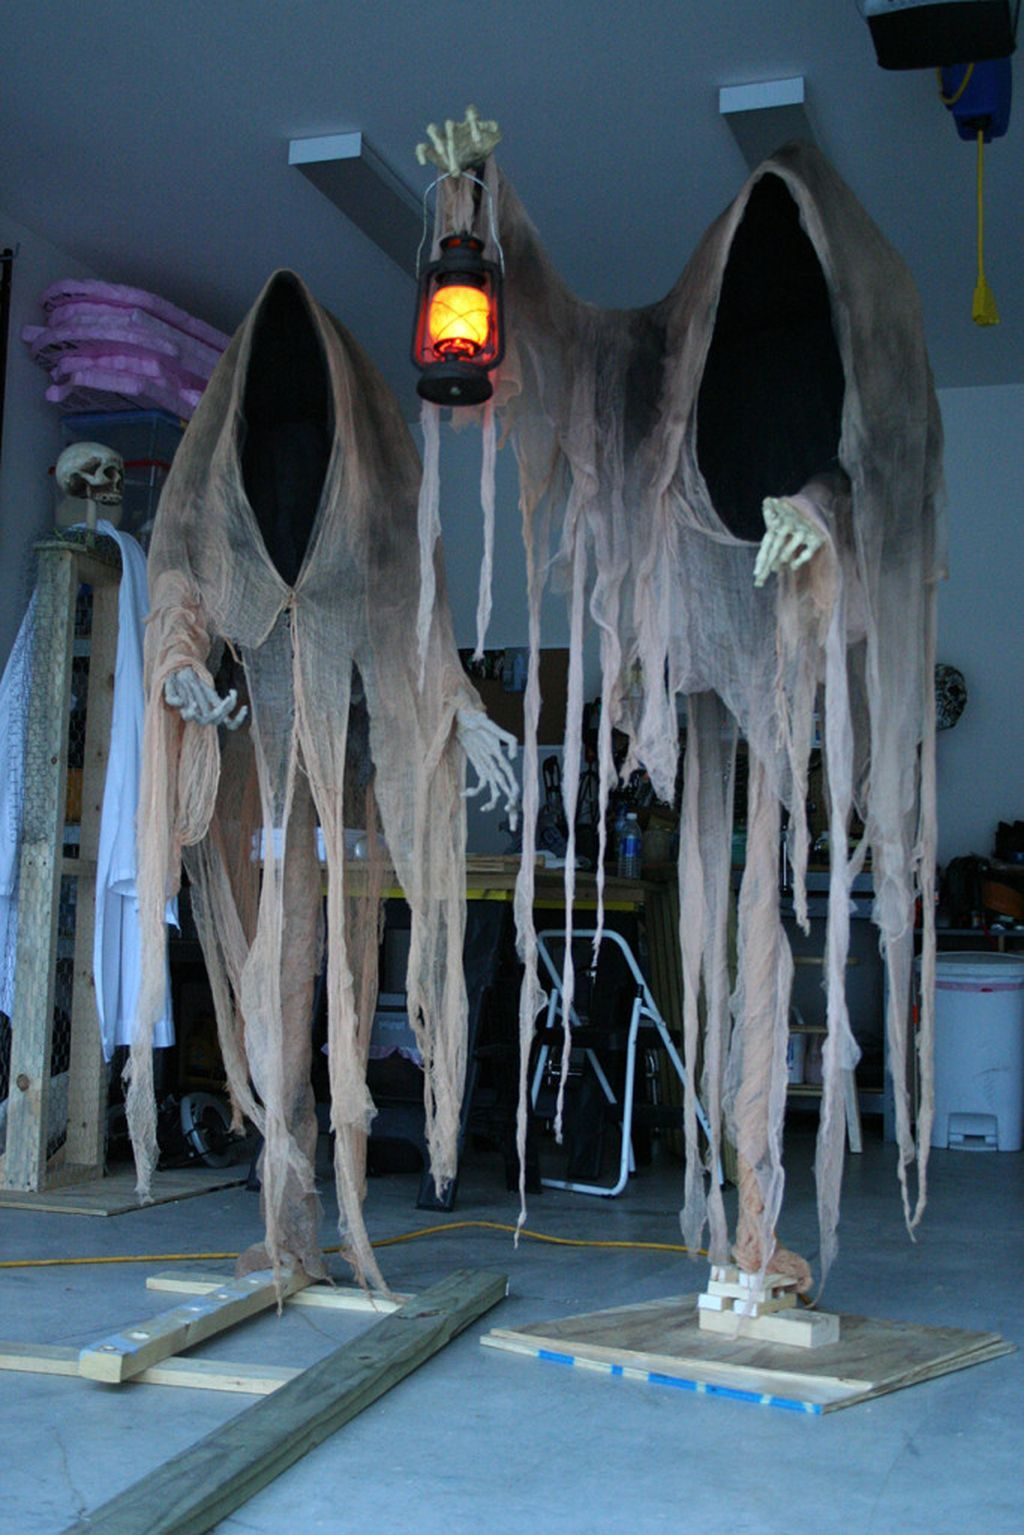 Scary Front Yard Halloween Decoration Ideas 55 Scary, Decoration - Halloween Yard Decorations